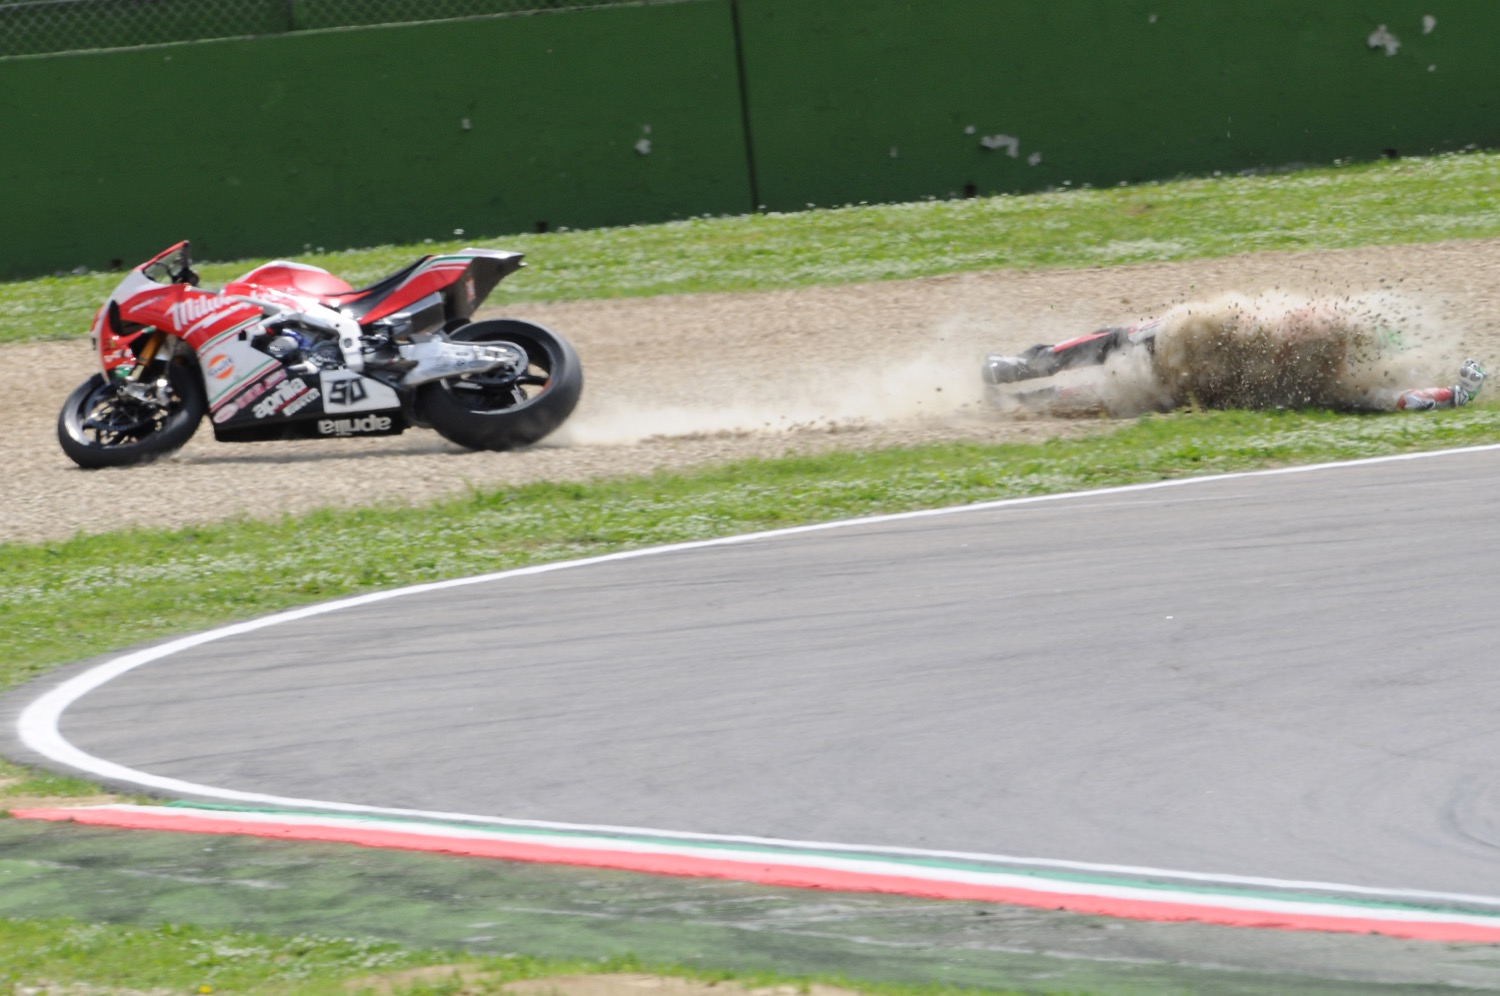 Accidente Eugene Laverty, SBK Imola